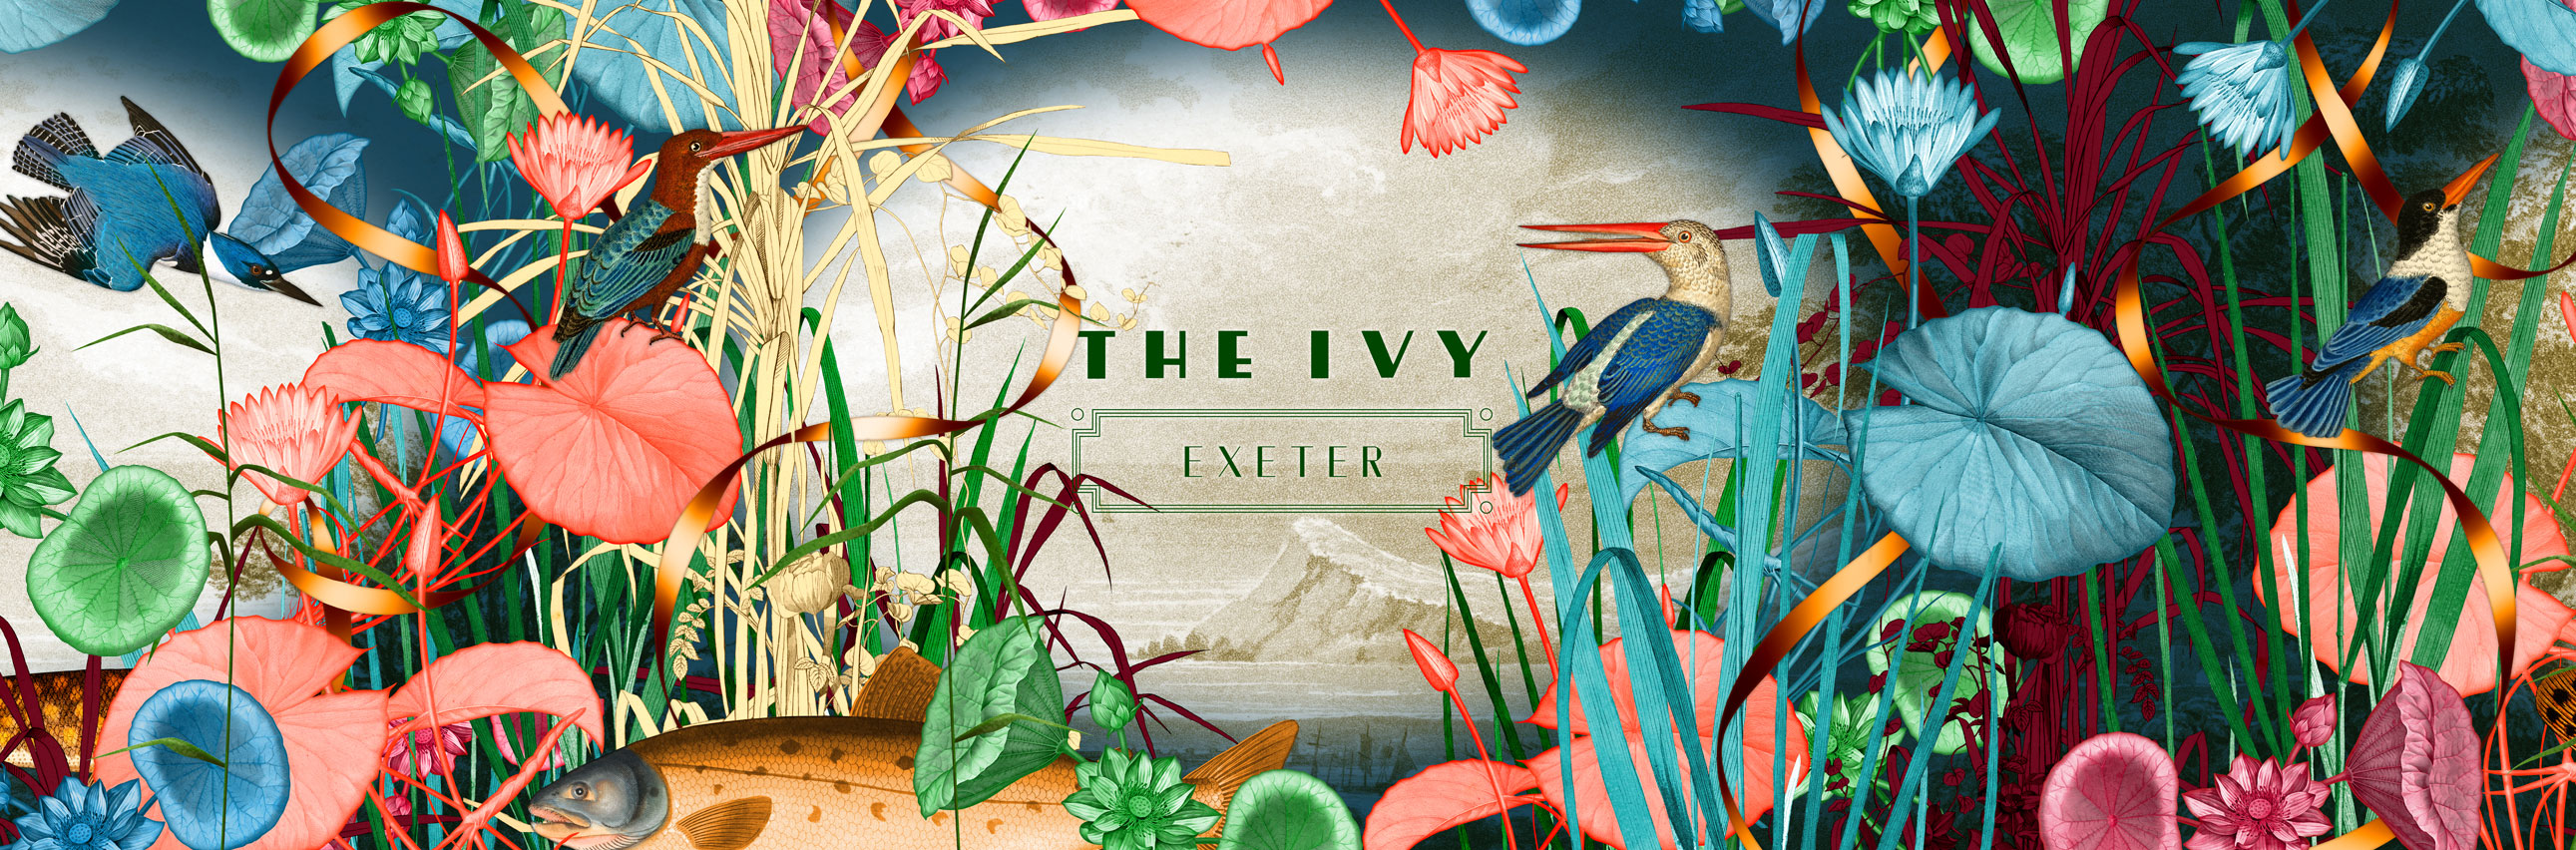 Sign up to our newsletter - The Ivy Exeter